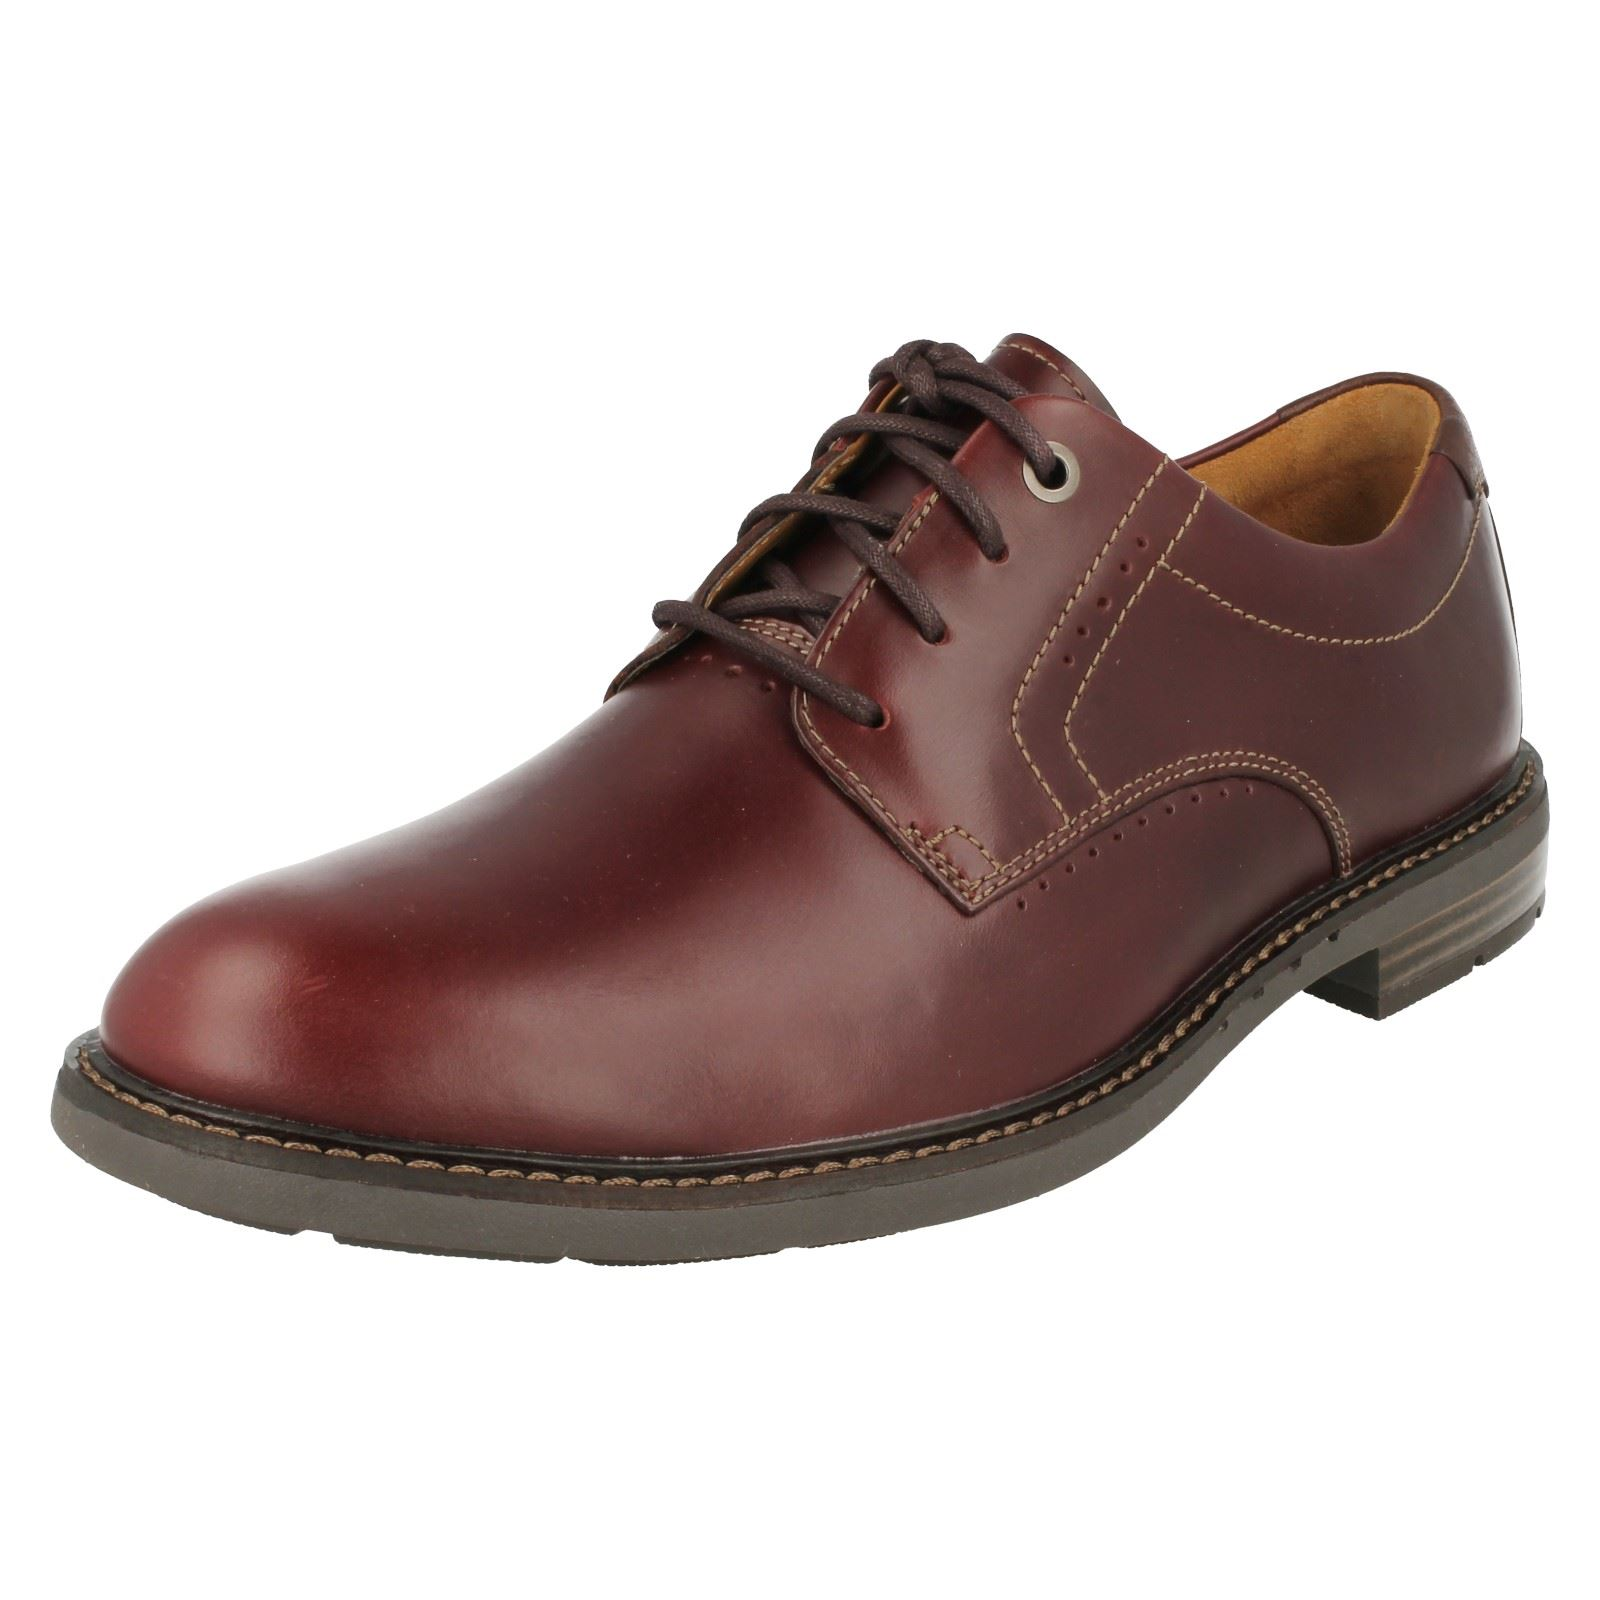 Mens Clarks Formal Lace Up Shoes. Unelott Plain